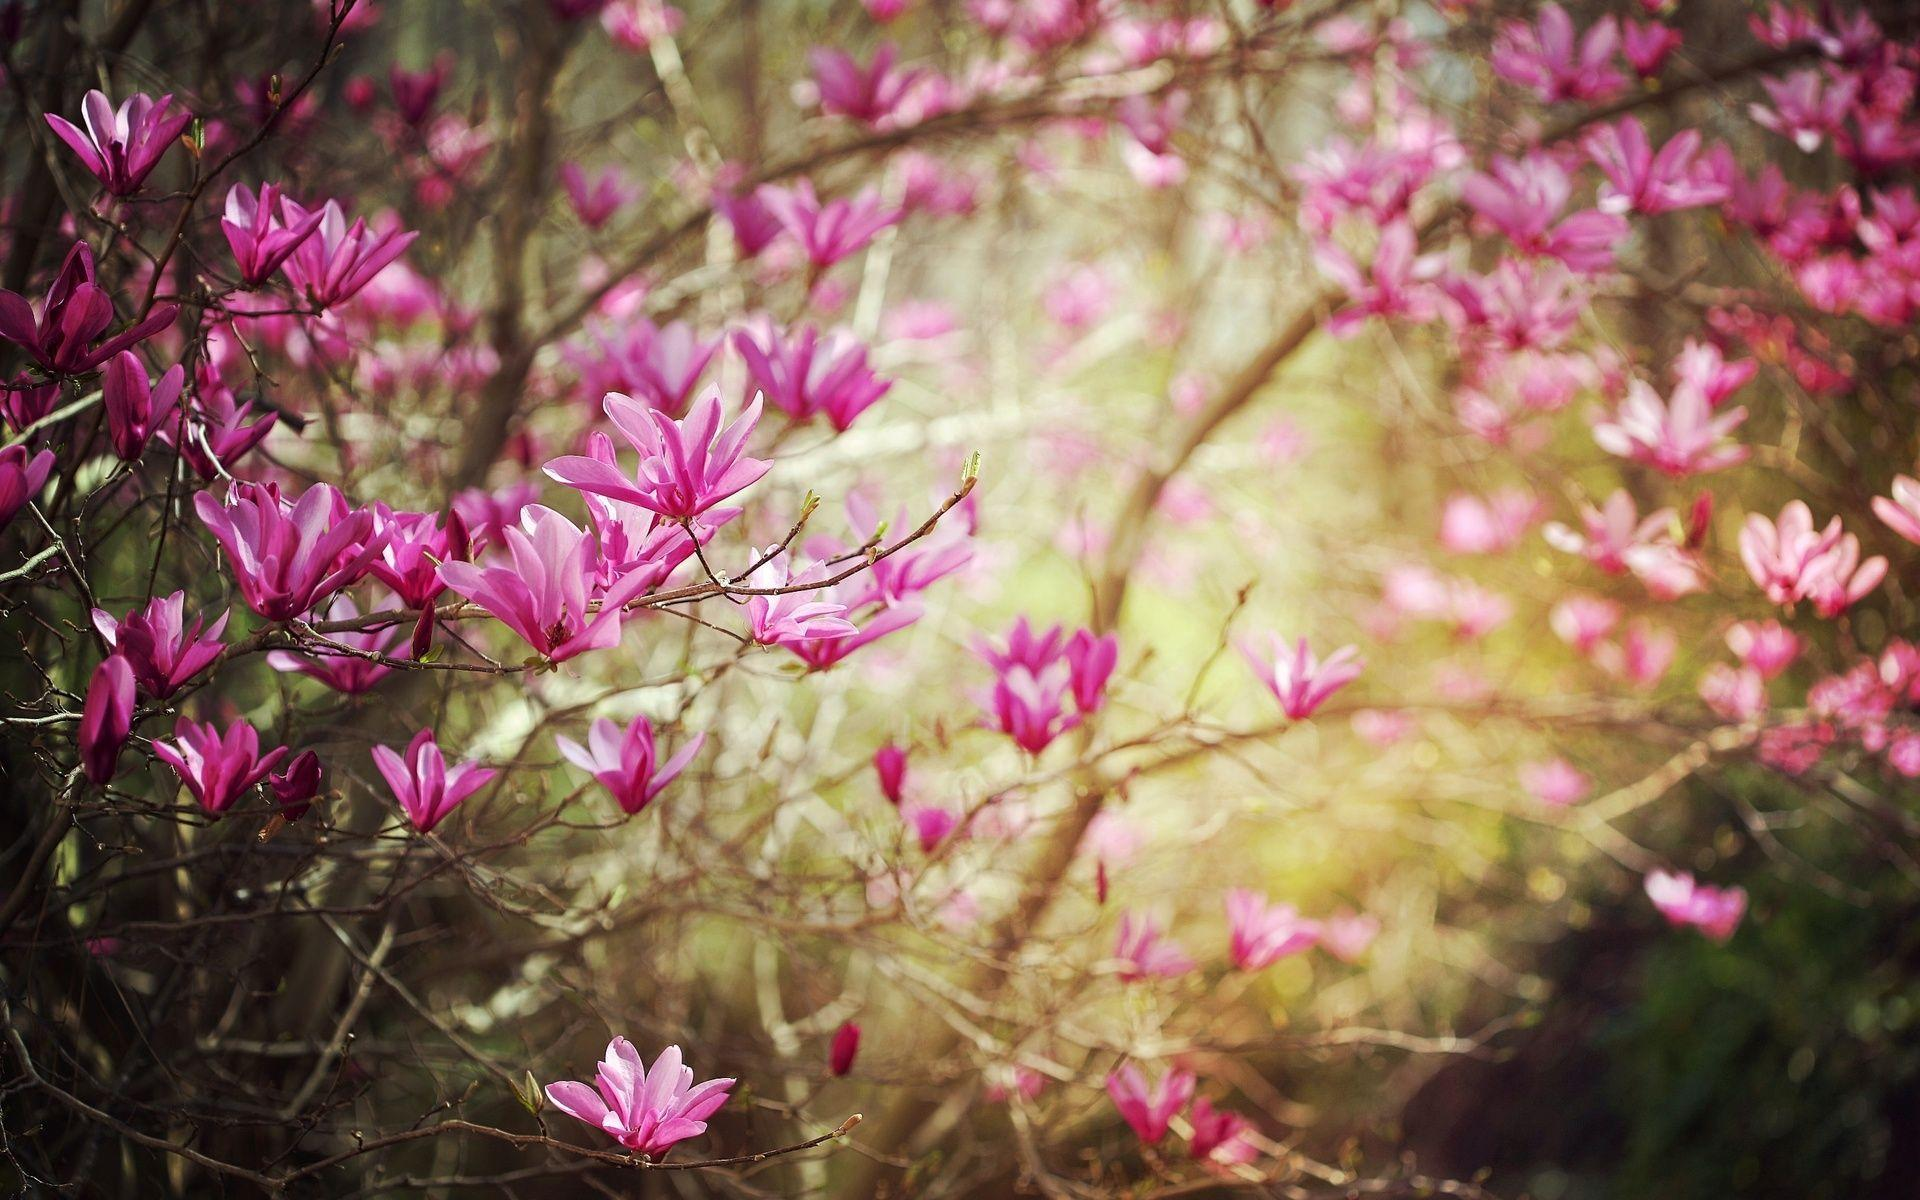 spring nature wallpaper - photo #22